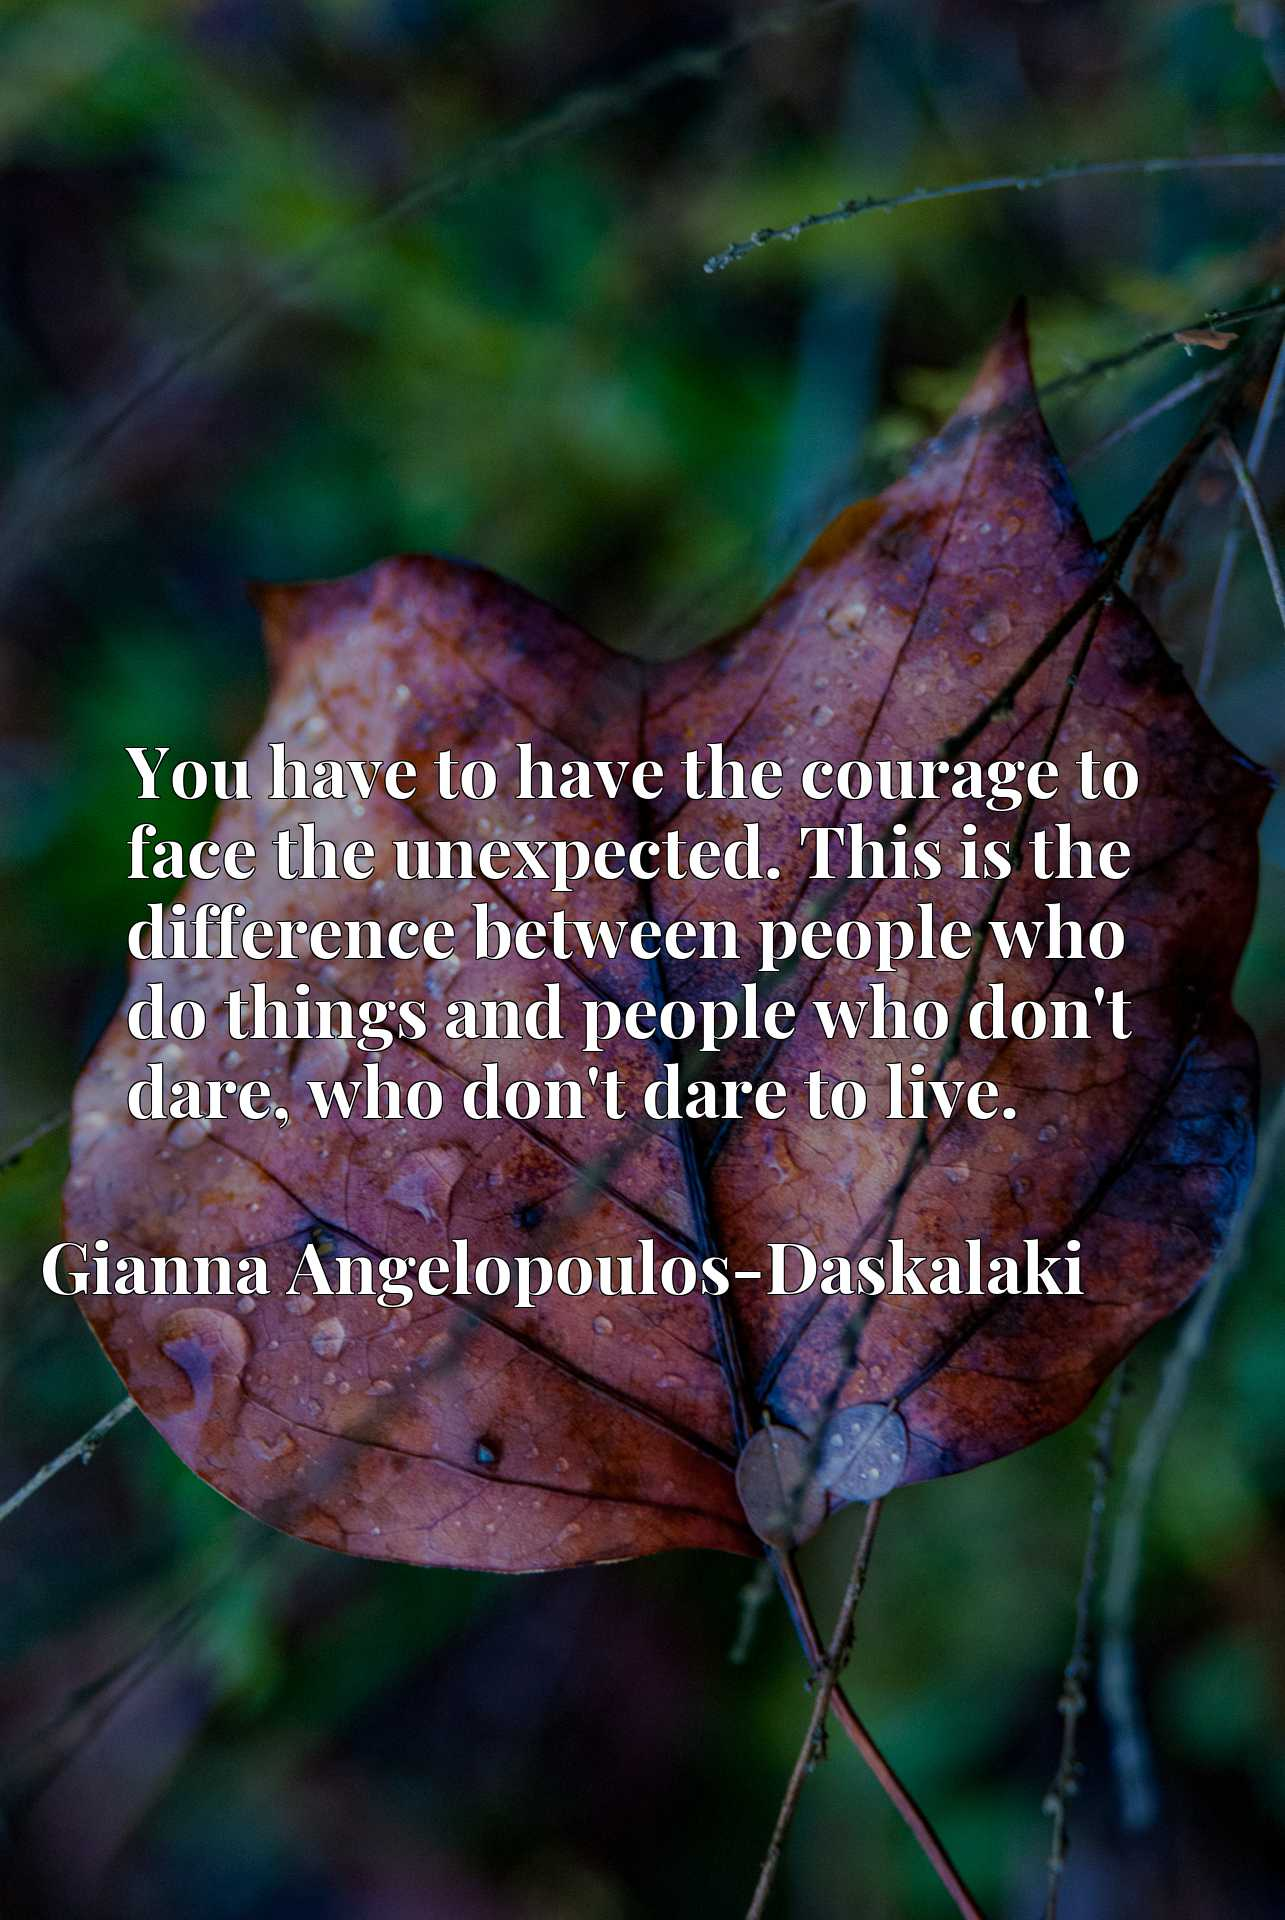 You have to have the courage to face the unexpected. This is the difference between people who do things and people who don't dare, who don't dare to live.